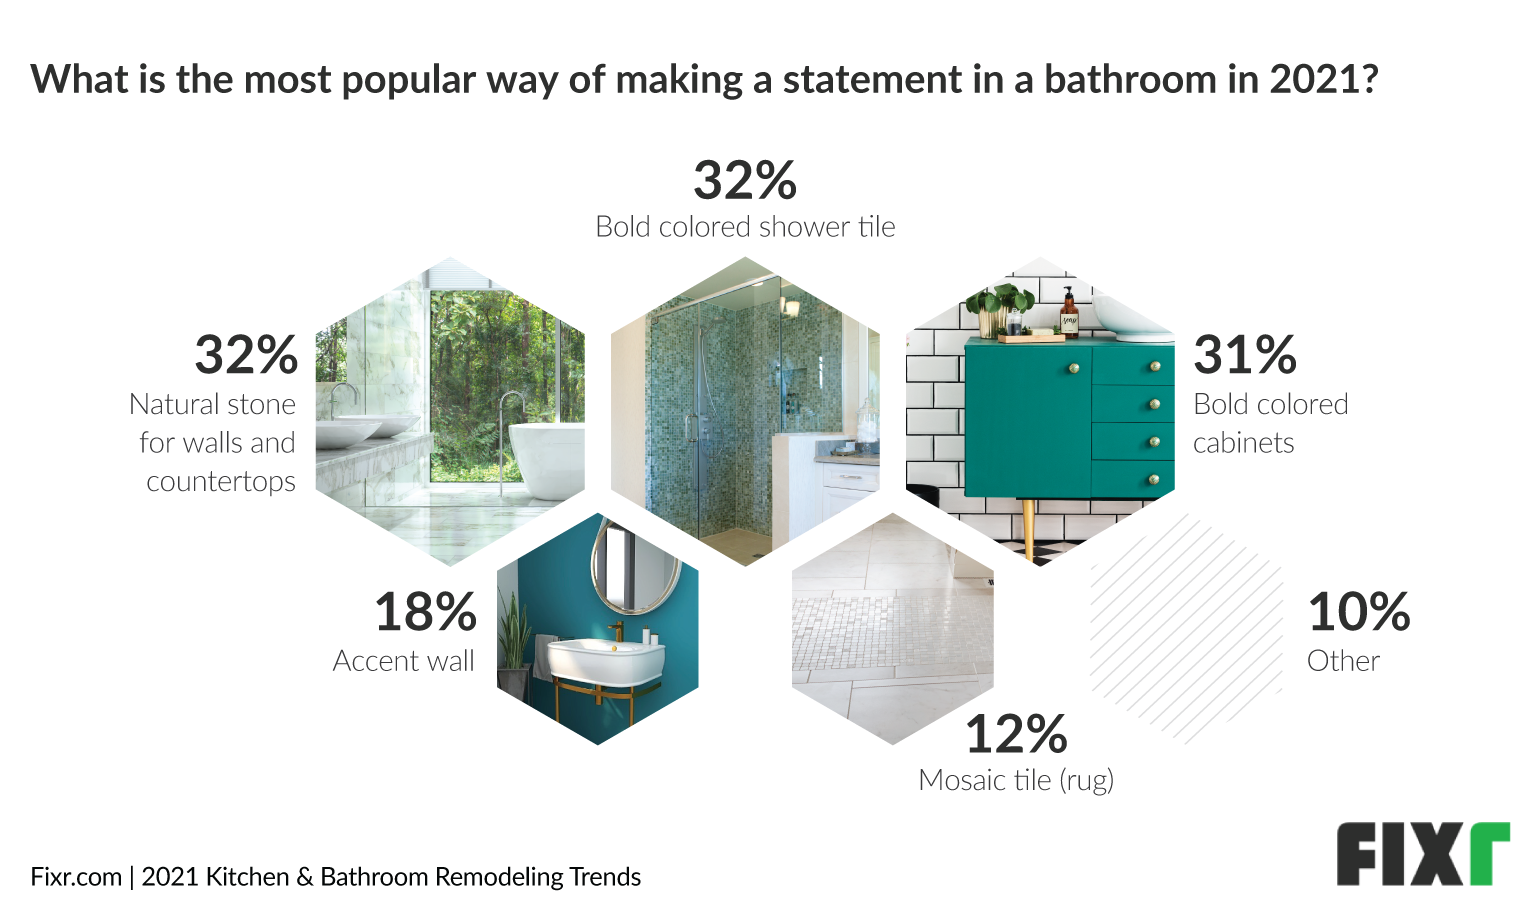 Bathroom Trends 2021 - Natural Stone and Bold Shower Tile